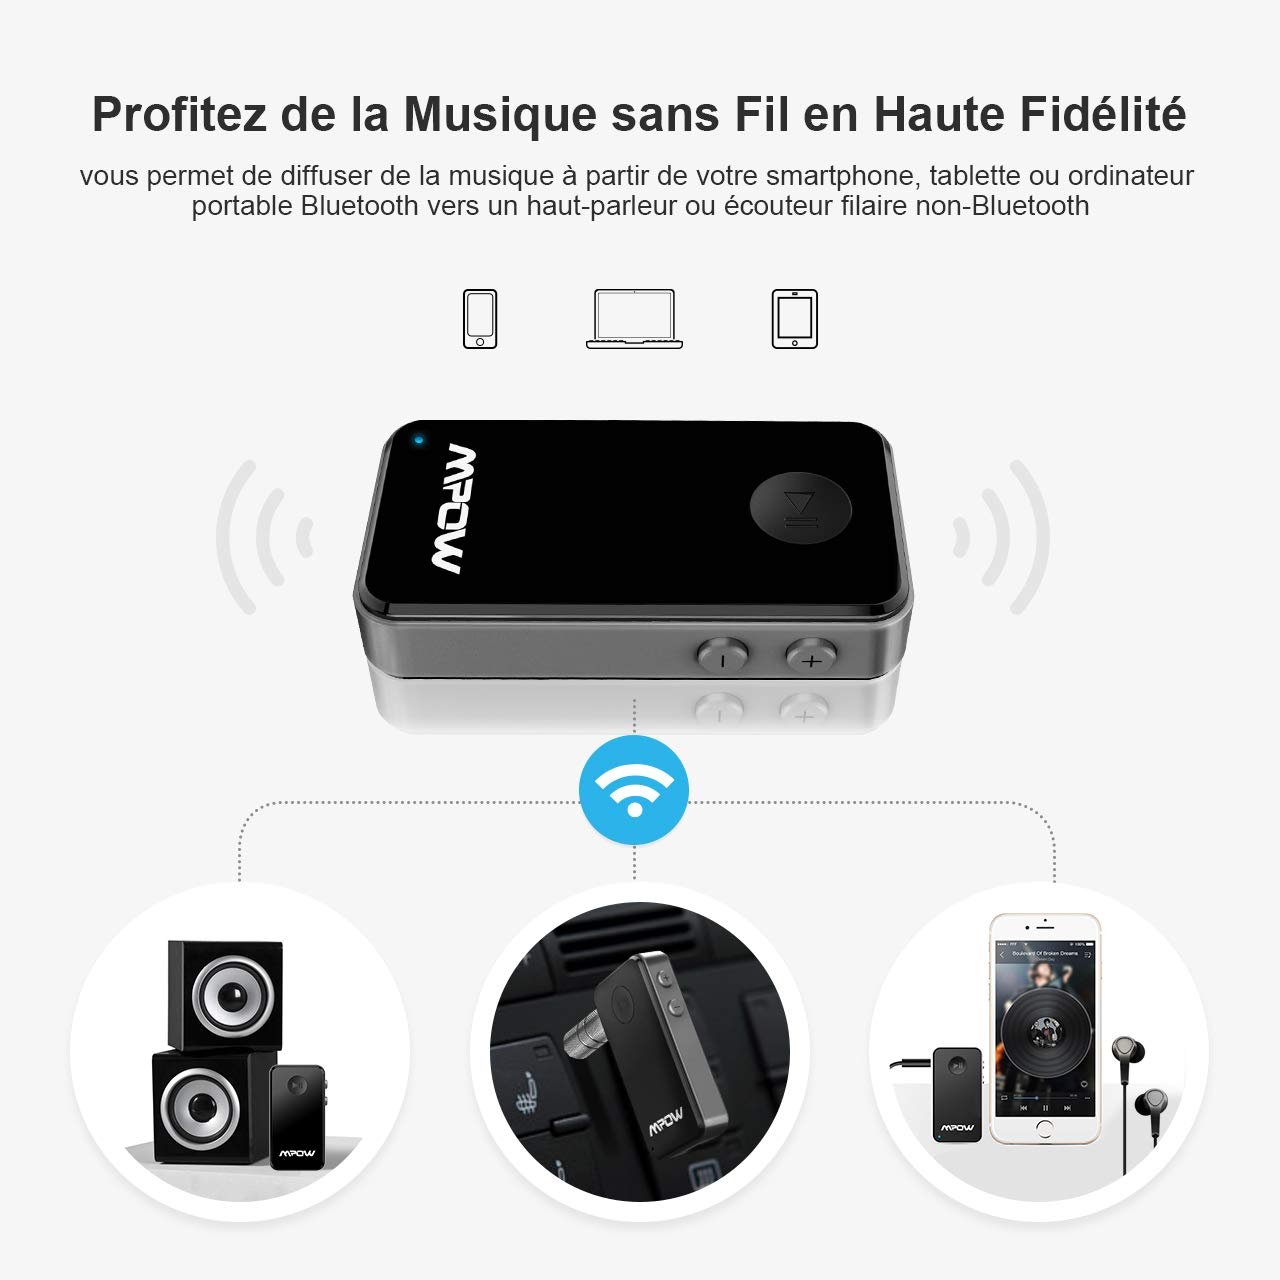 Bluetooth 4.0 +EDR, A2DP, Built-in Microphone Bluetooth Receiver, Car Audio System Mpow Wireless Audio Adapter with 3.5 mm Stereo Output Hands-Free Car Kit  for Home